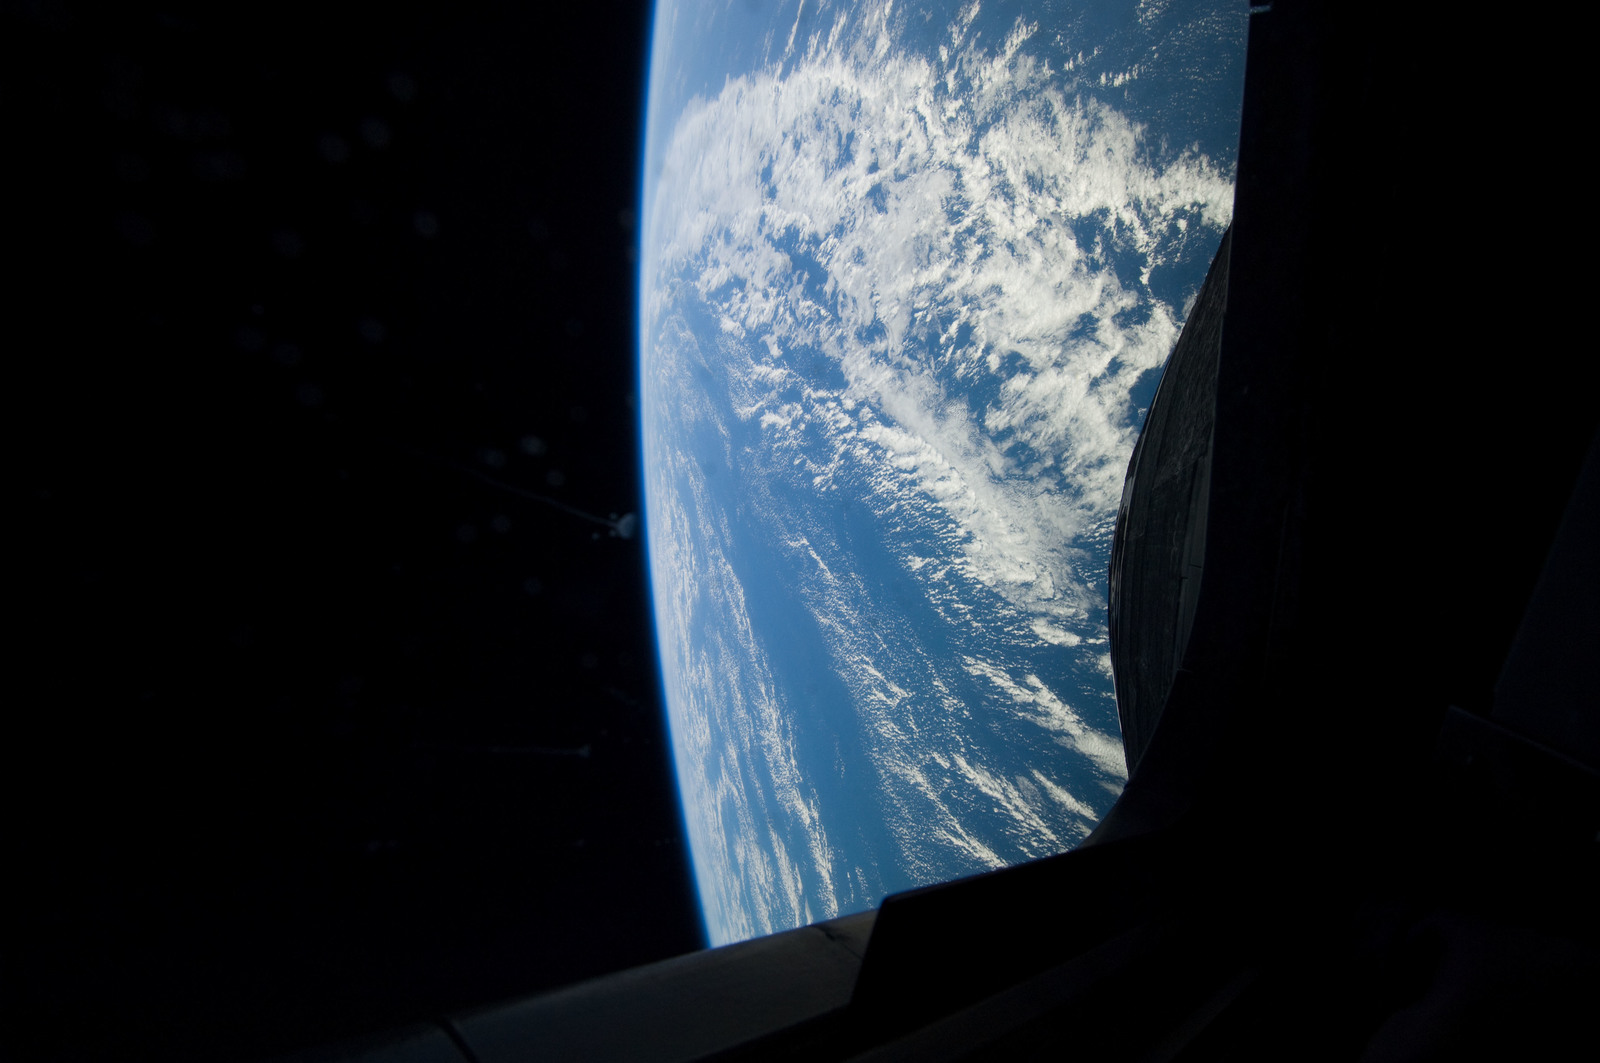 s133E006953 - STS-133 - Earth Observation taken by the STS-133 crew